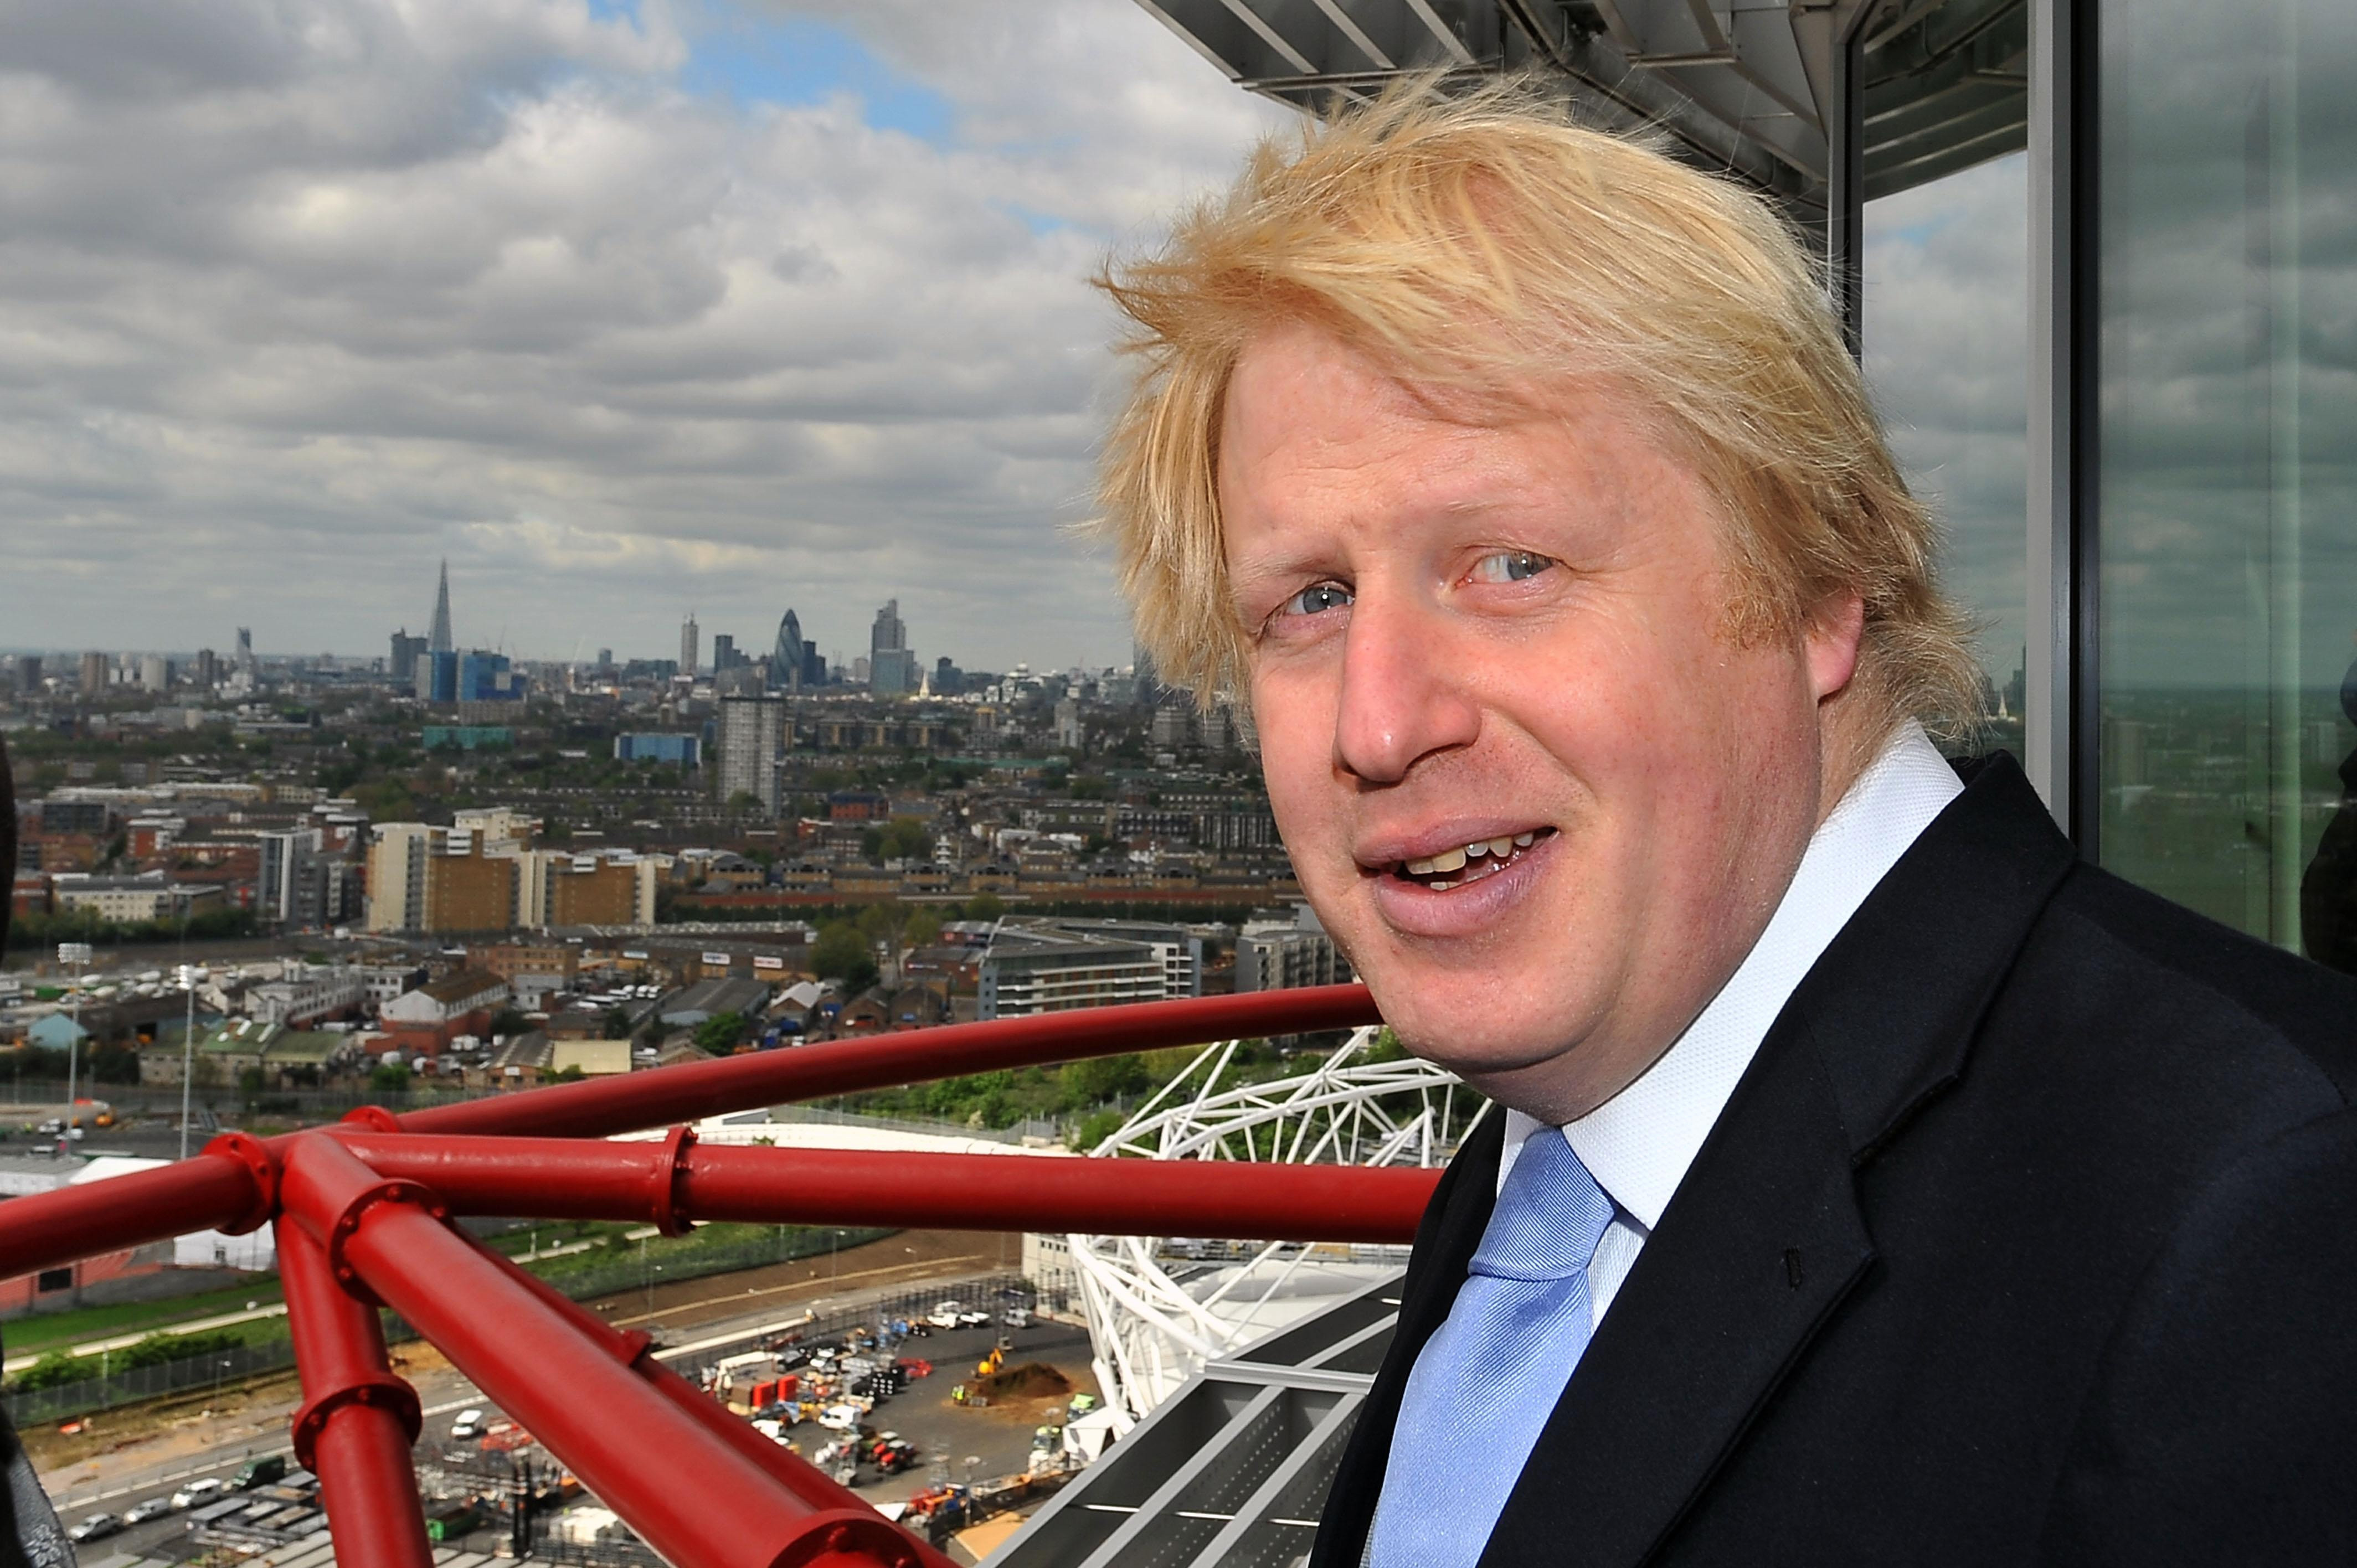 London Mayor Boris Johnson looks out from the public viewing platform of the newly completed ArcelorMittal Orbit, the Anish Kapoor and Cecil Balmond-designed sculpture that that will stand at the heart of the London 2012 Olympic and Paralympic Park.